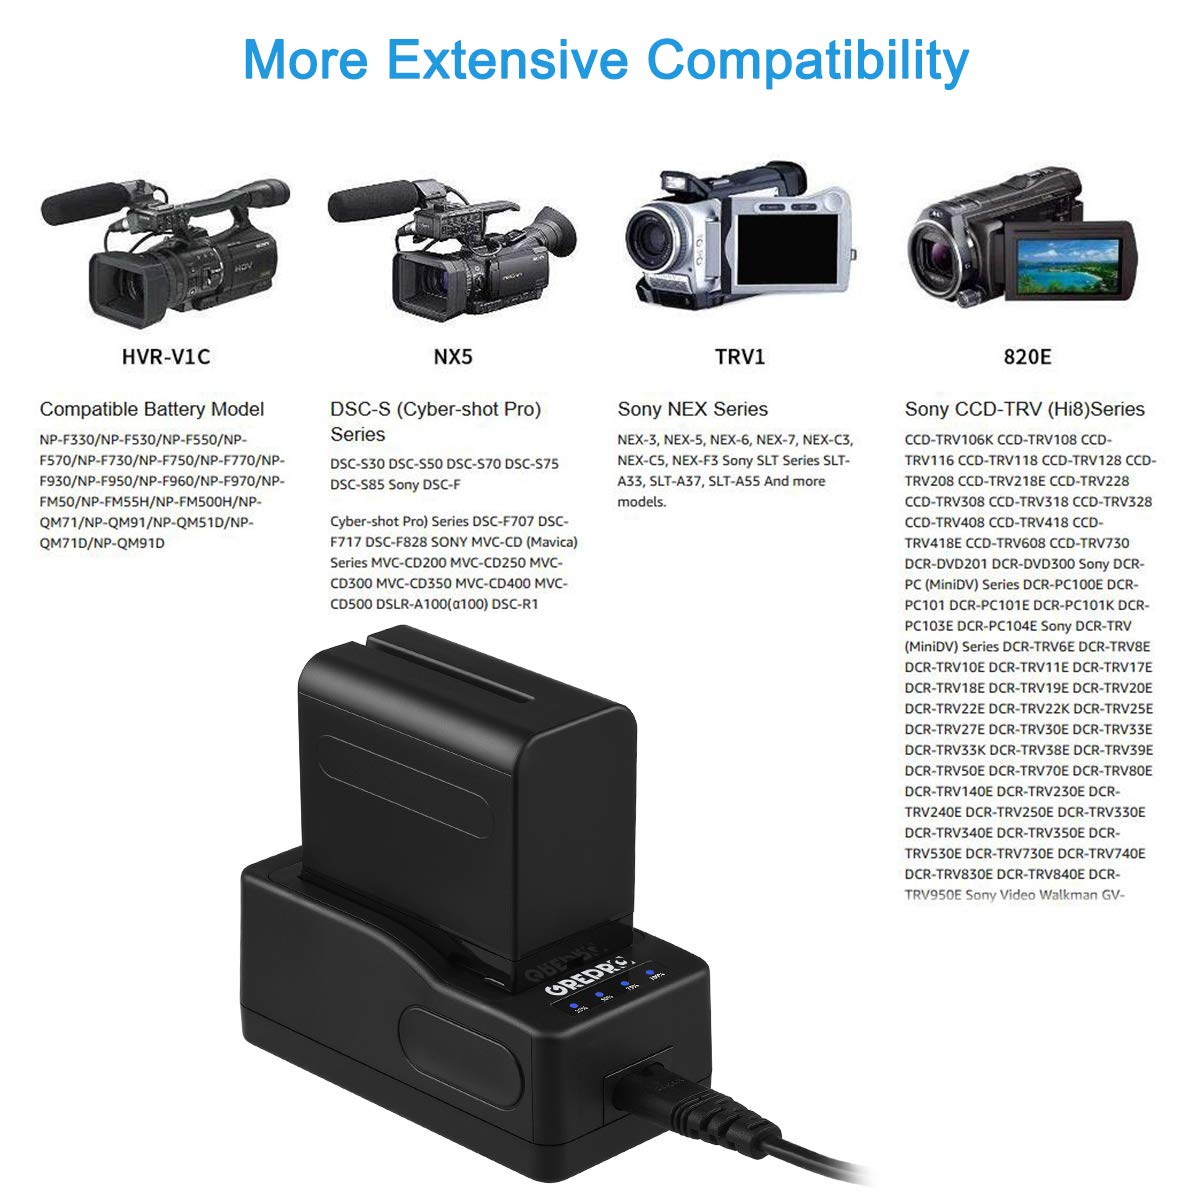 Grepro DMW-BLF19 Dual USB LCD Camera Battery Charger Set 2 Pack Rechargeable Battery 100/% Compatible with Original Panasonic DMW-BLF19E DMC-GH5 DMC-GH3 DMC-GH3A DMC-GH3H DMC-GH4 DMC-GH4H DC-GH5S